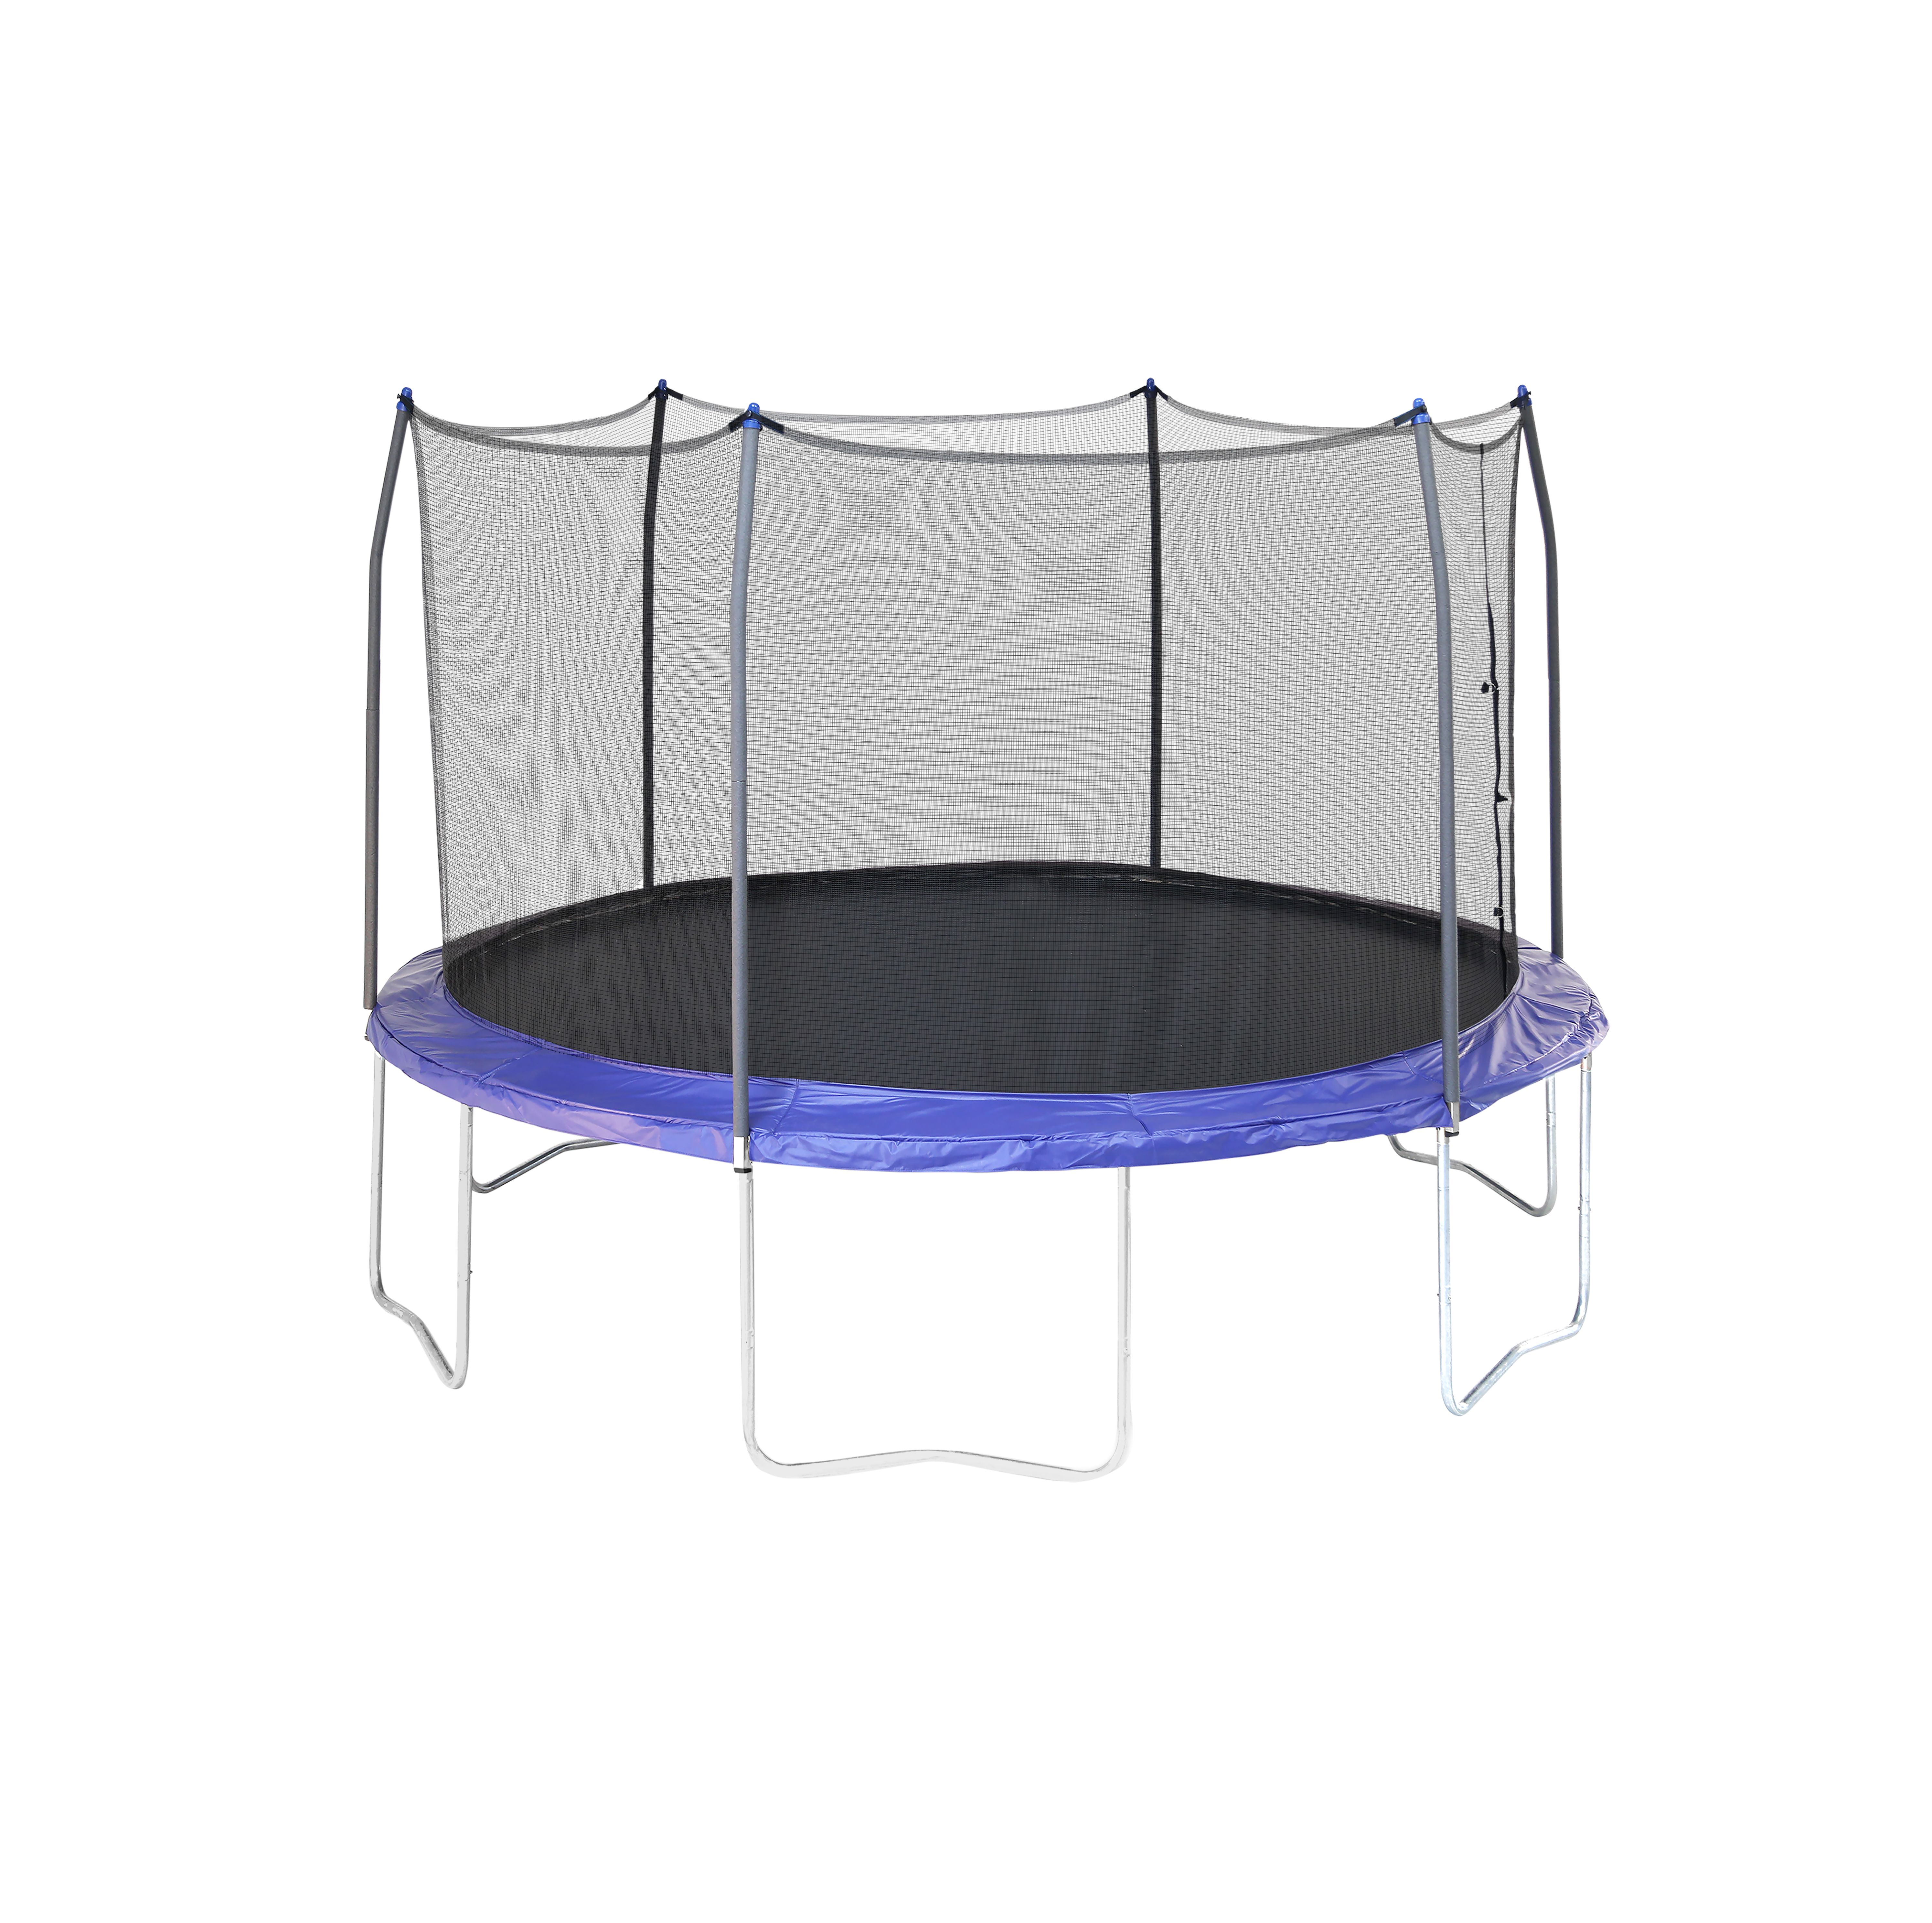 12u0027 Round Tr&oline with Enclosure  sc 1 st  Walmart & Skywalker Trampolines 12-Foot Trampoline with Safety Enclosure ...